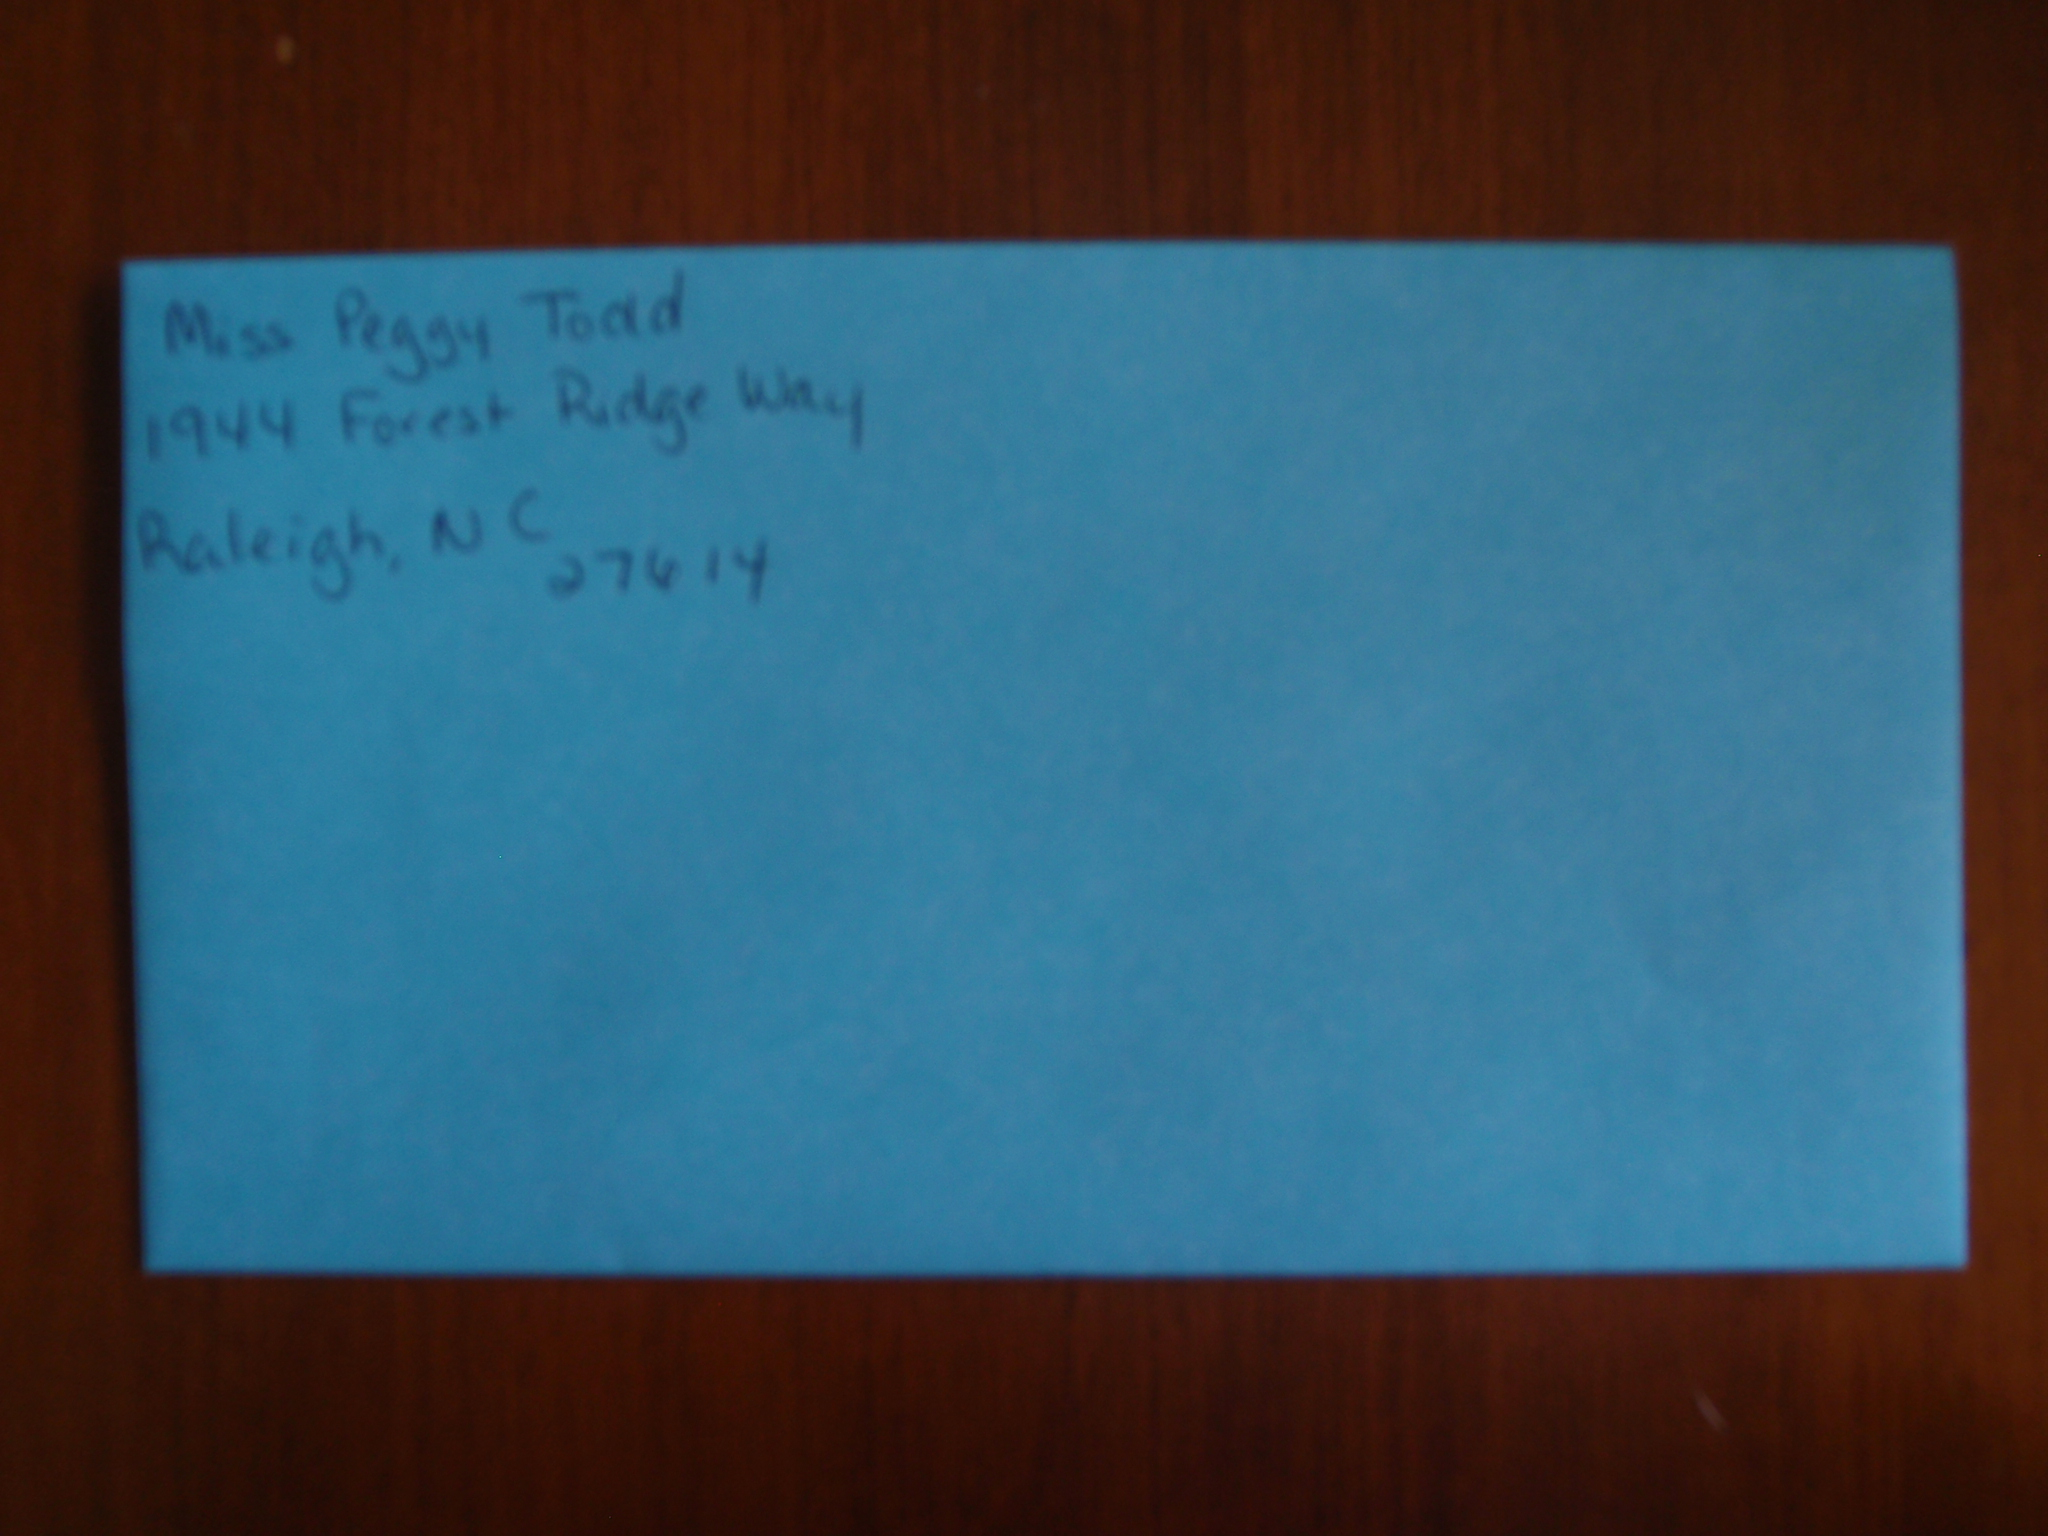 How to Write a Mailing Address on an Envelope